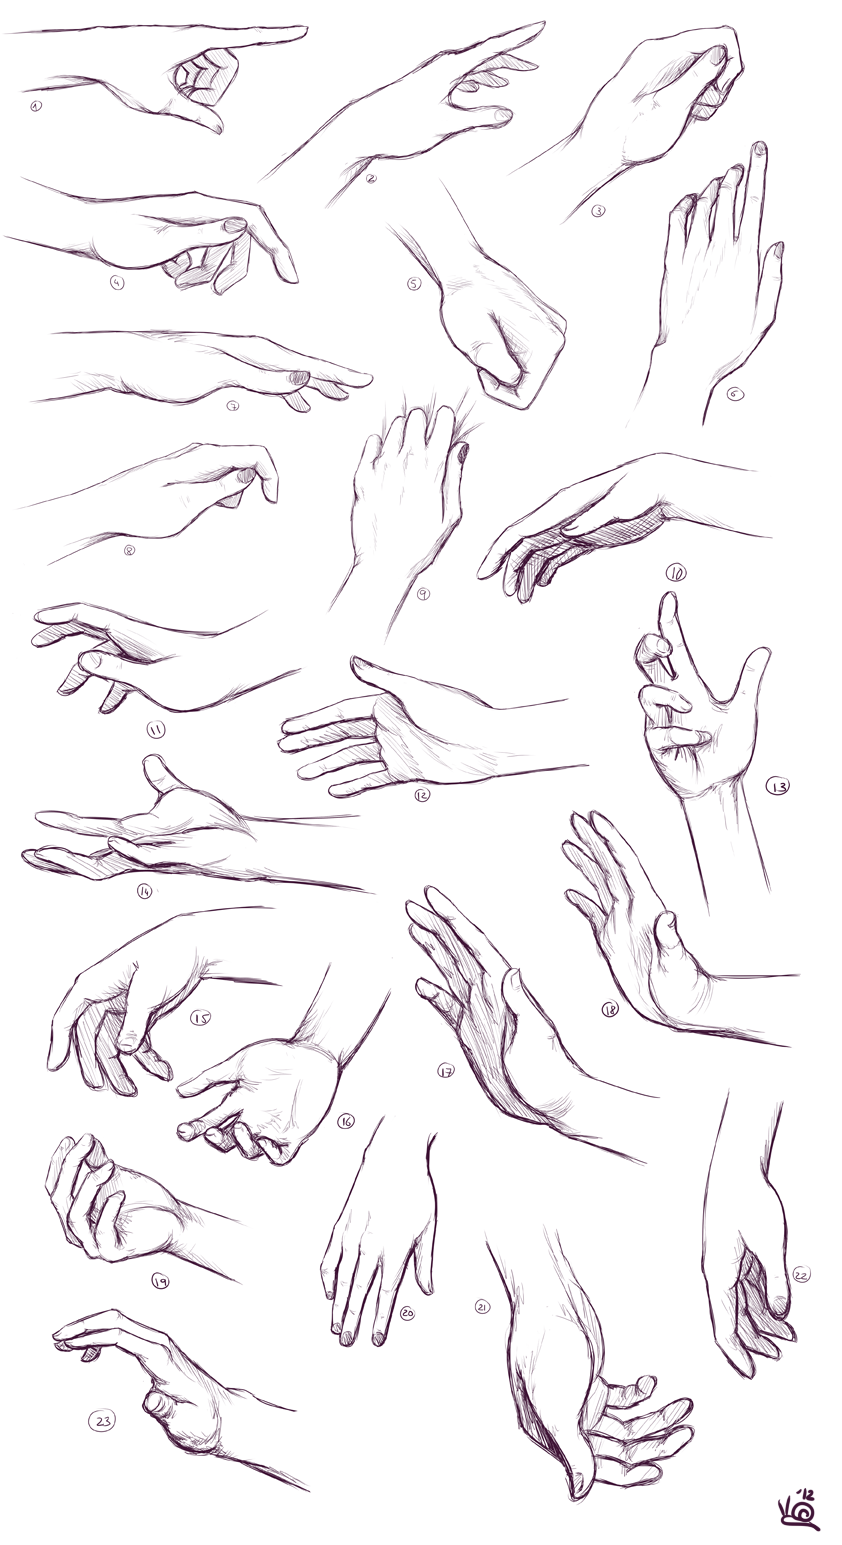 Practice - Hands by saurien